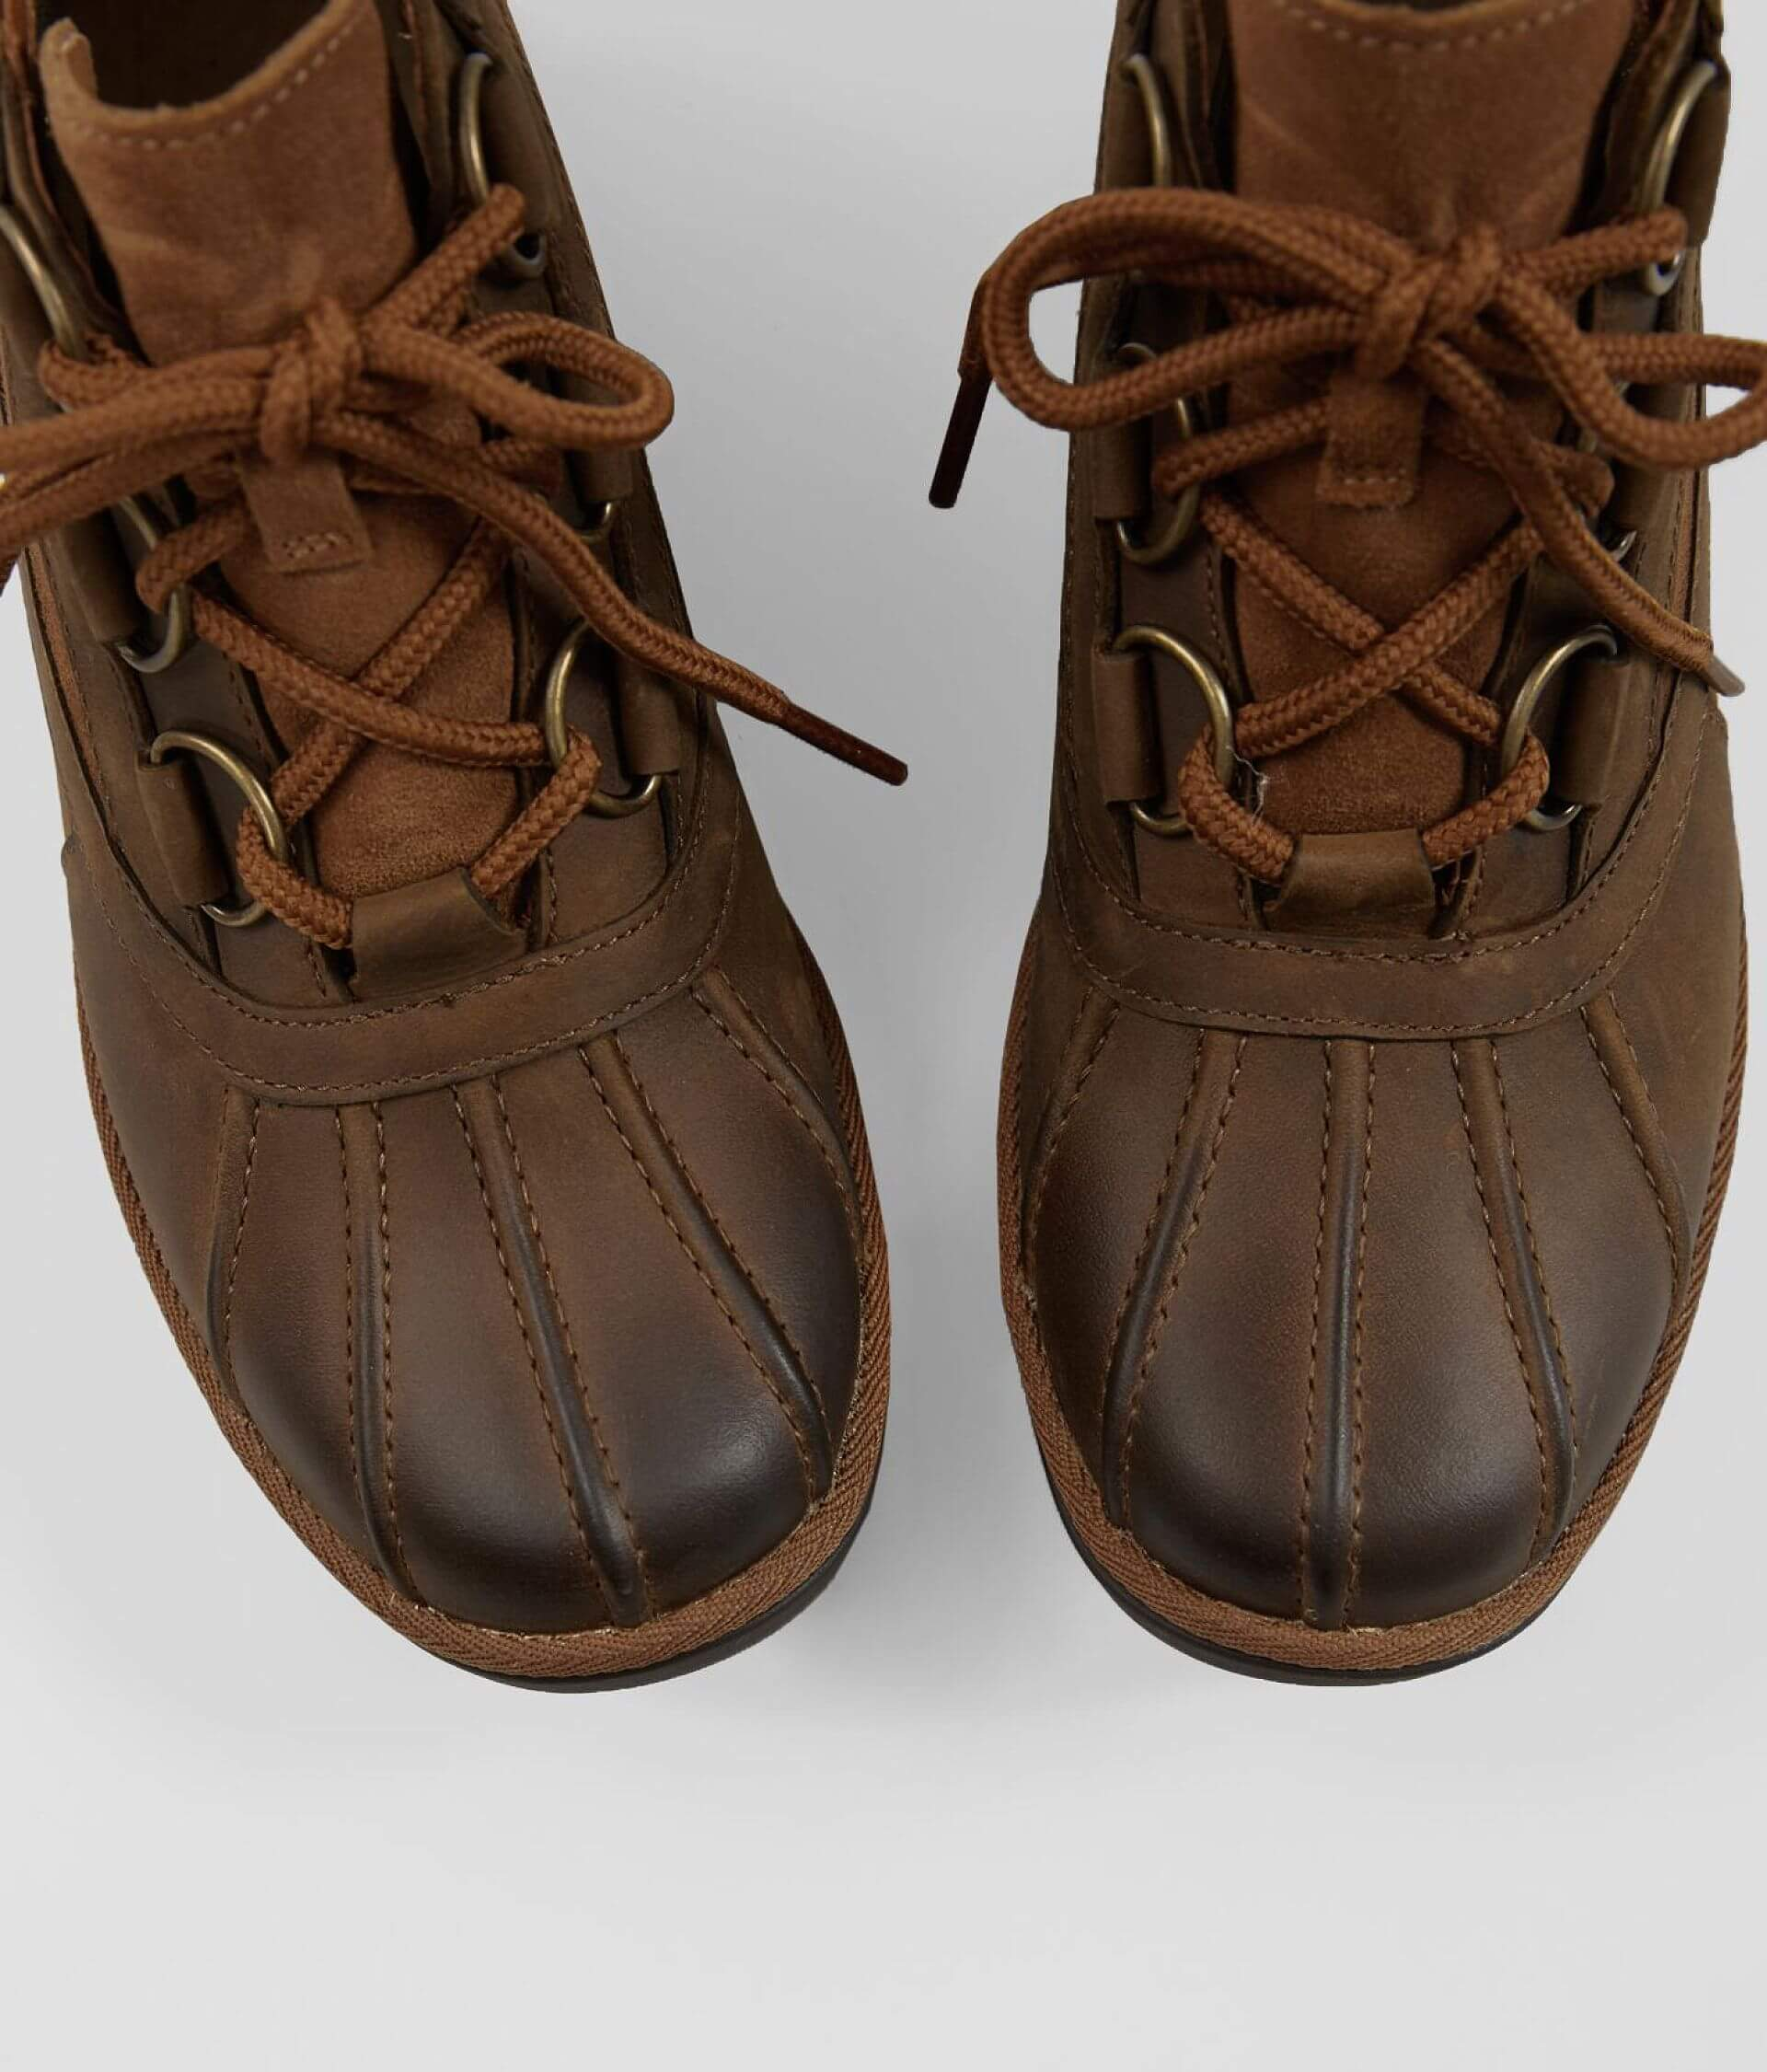 d09052bca86 UGG® Heather Waterproof Leather Boot - Women's Shoes in Chestnut ...